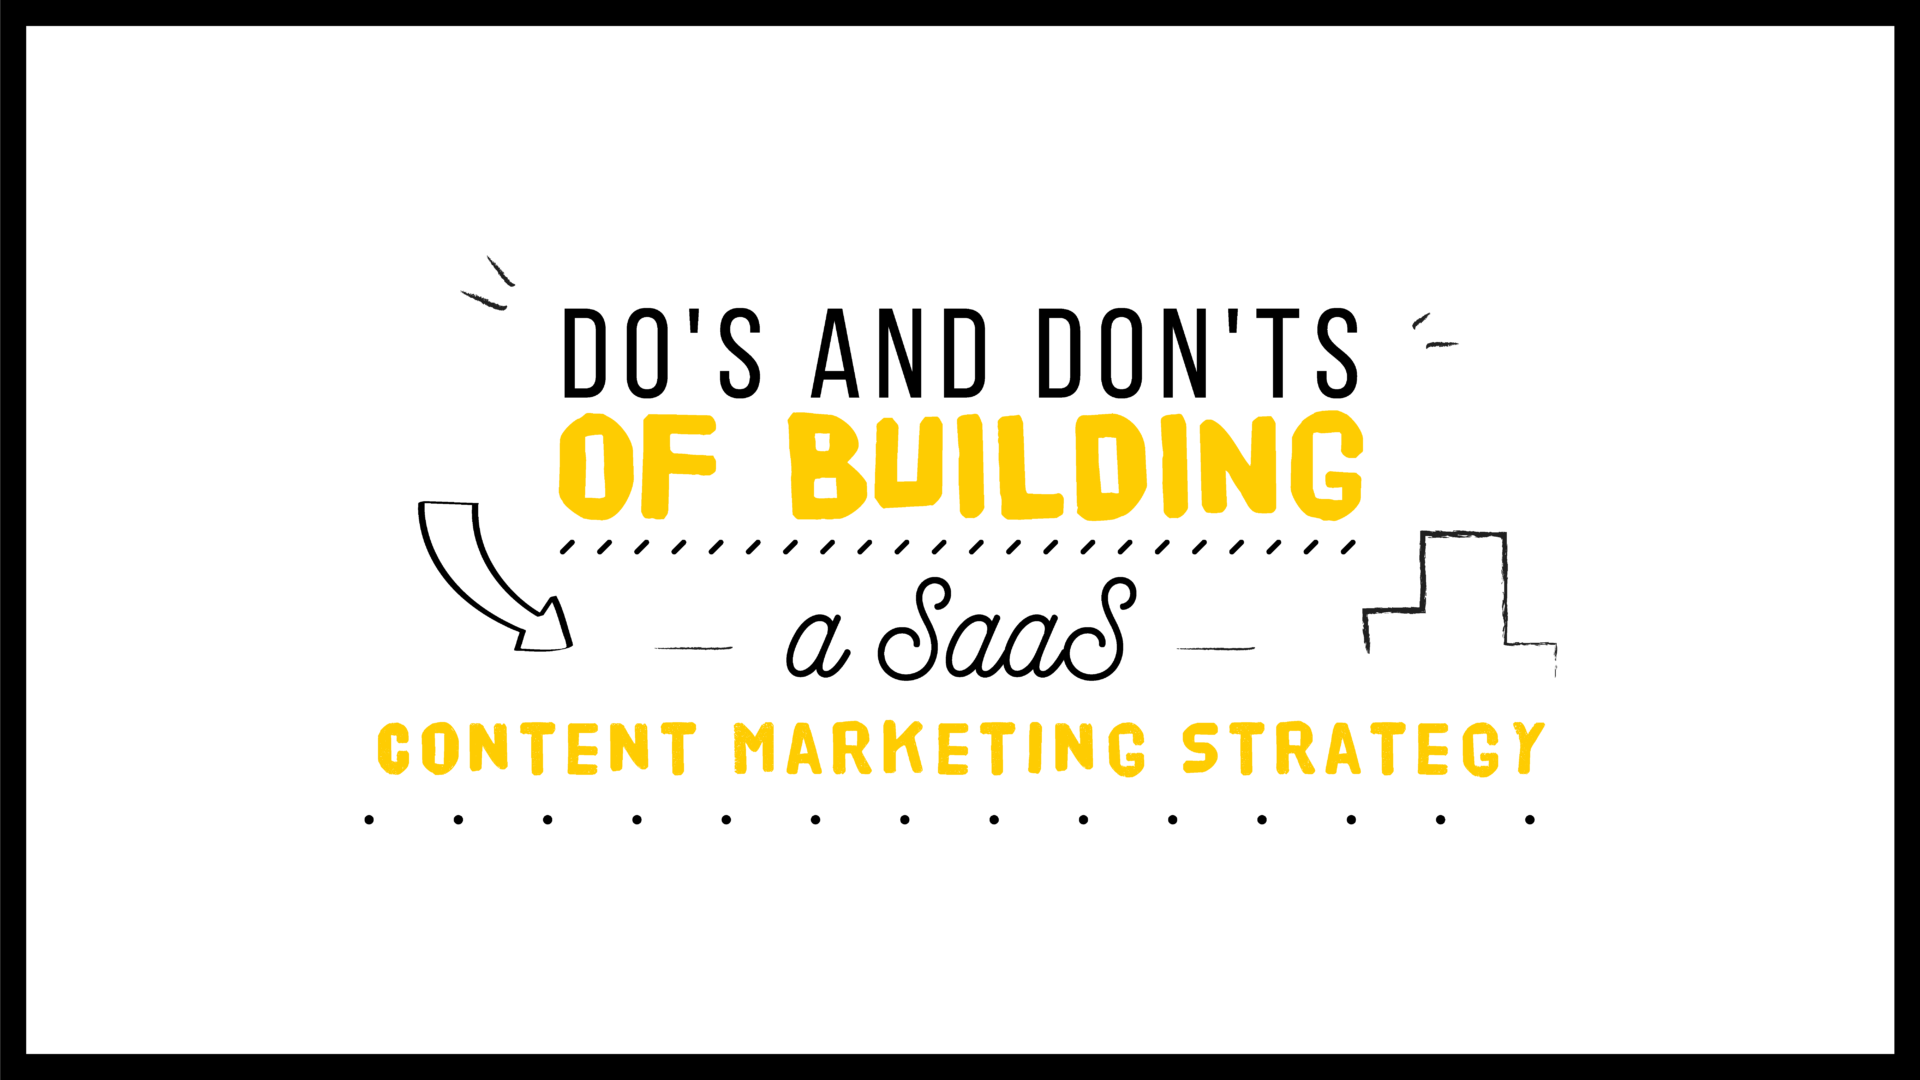 Do's and Don'ts of Building a SaaS Content Marketing Strategy